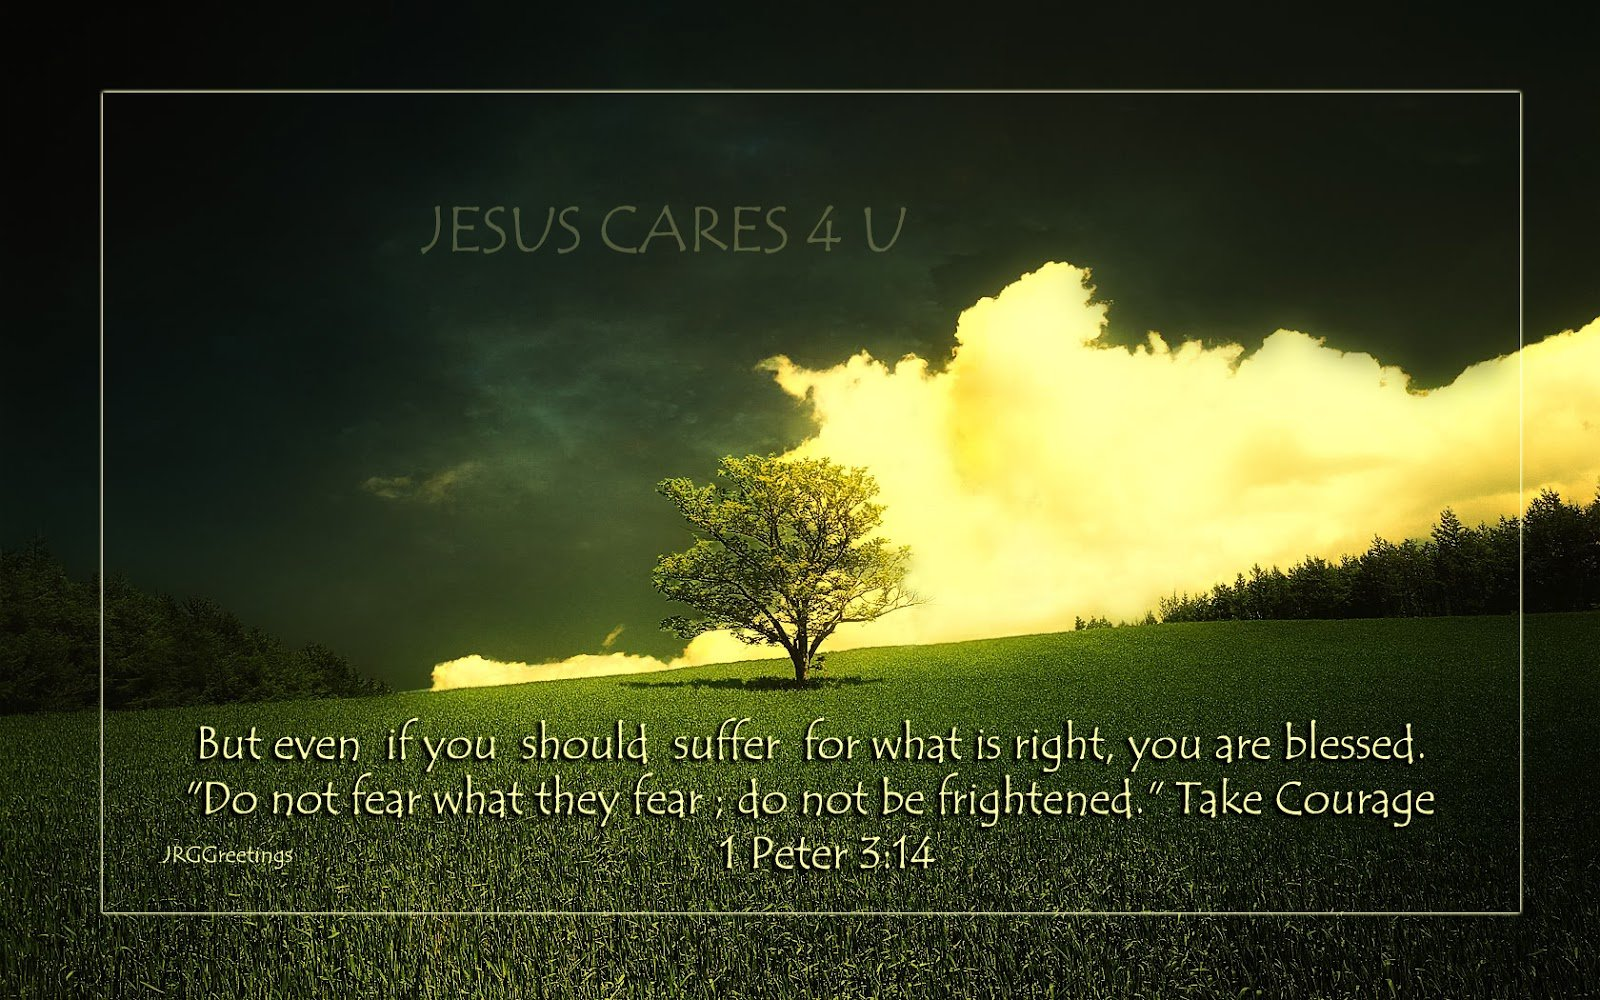 ... Card & Wallpapers Free: High Quality Free Christian Desktop Wallpapers